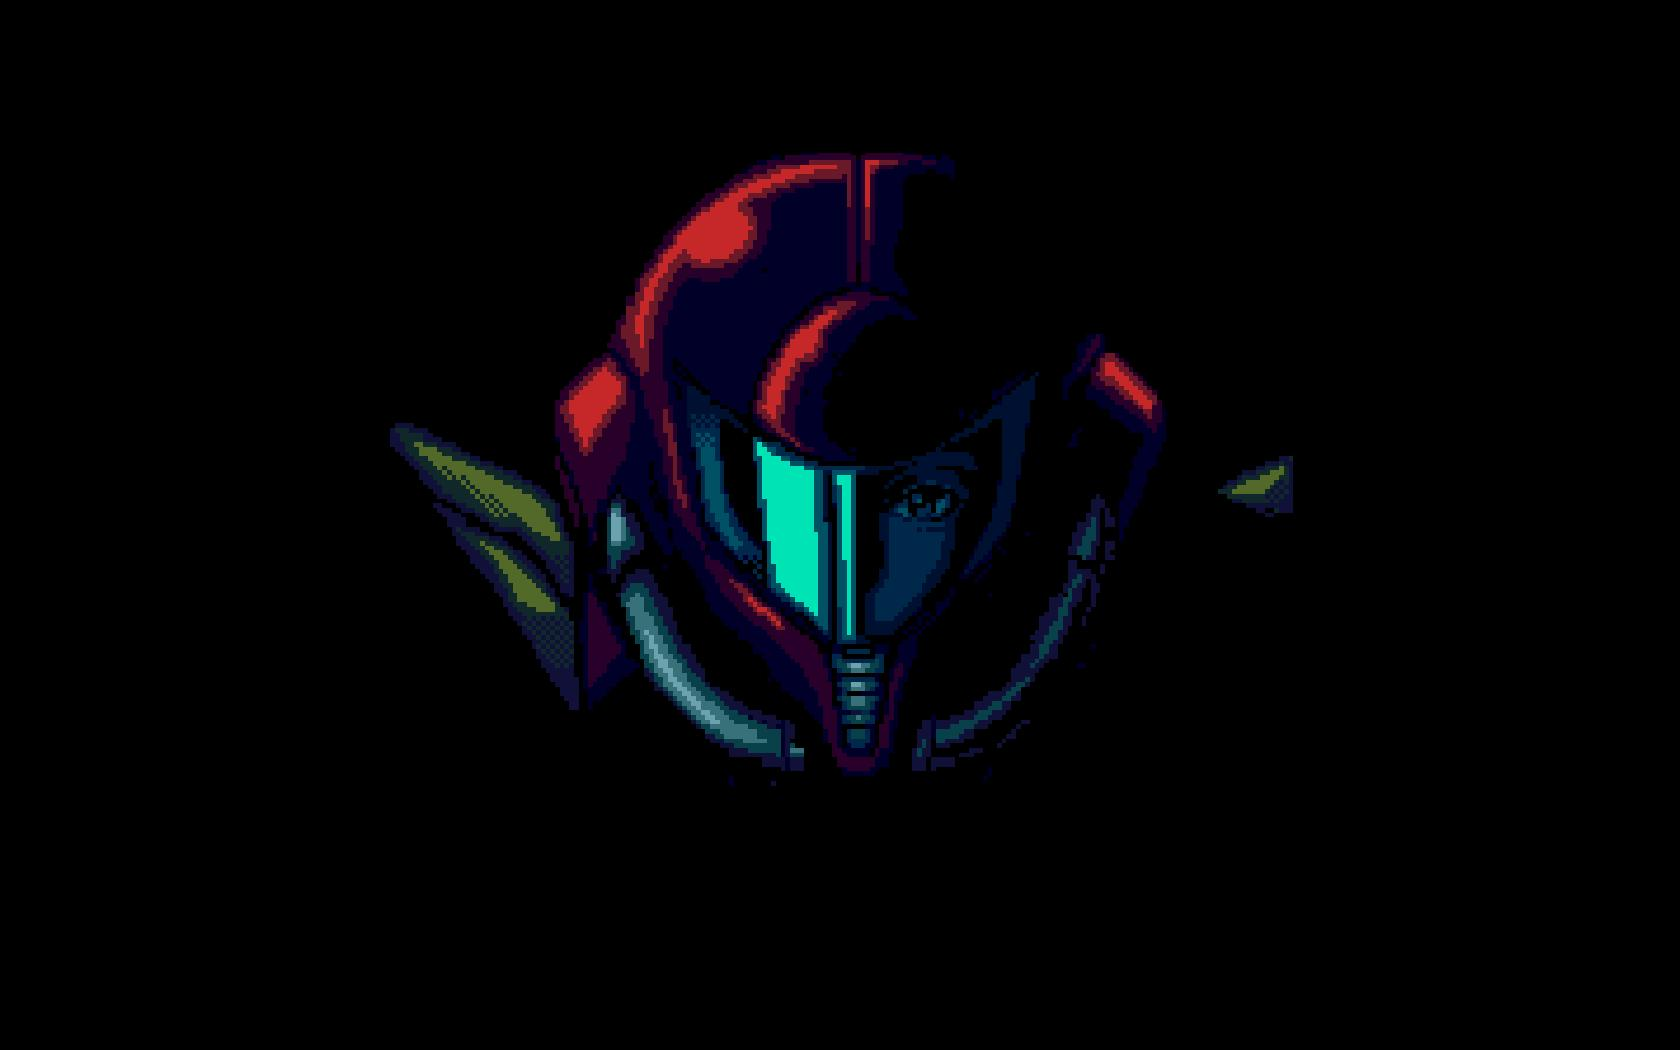 Super Metroid Soundtrack